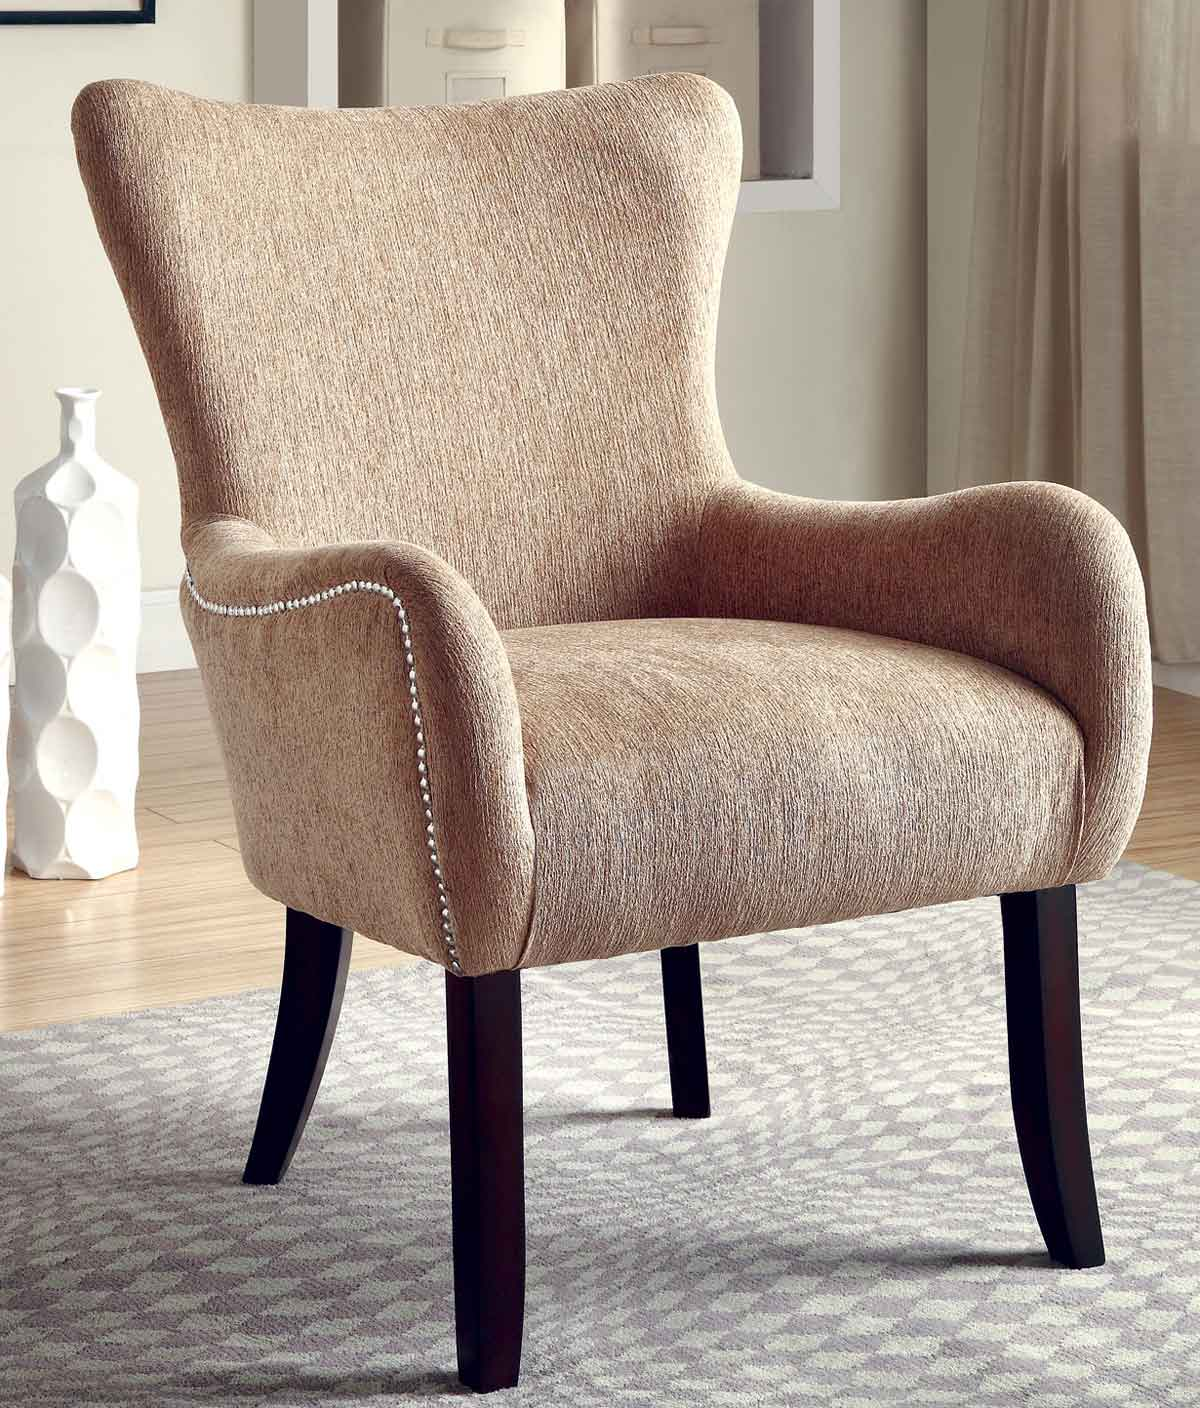 Coaster 902503 Accent Chair - Sand